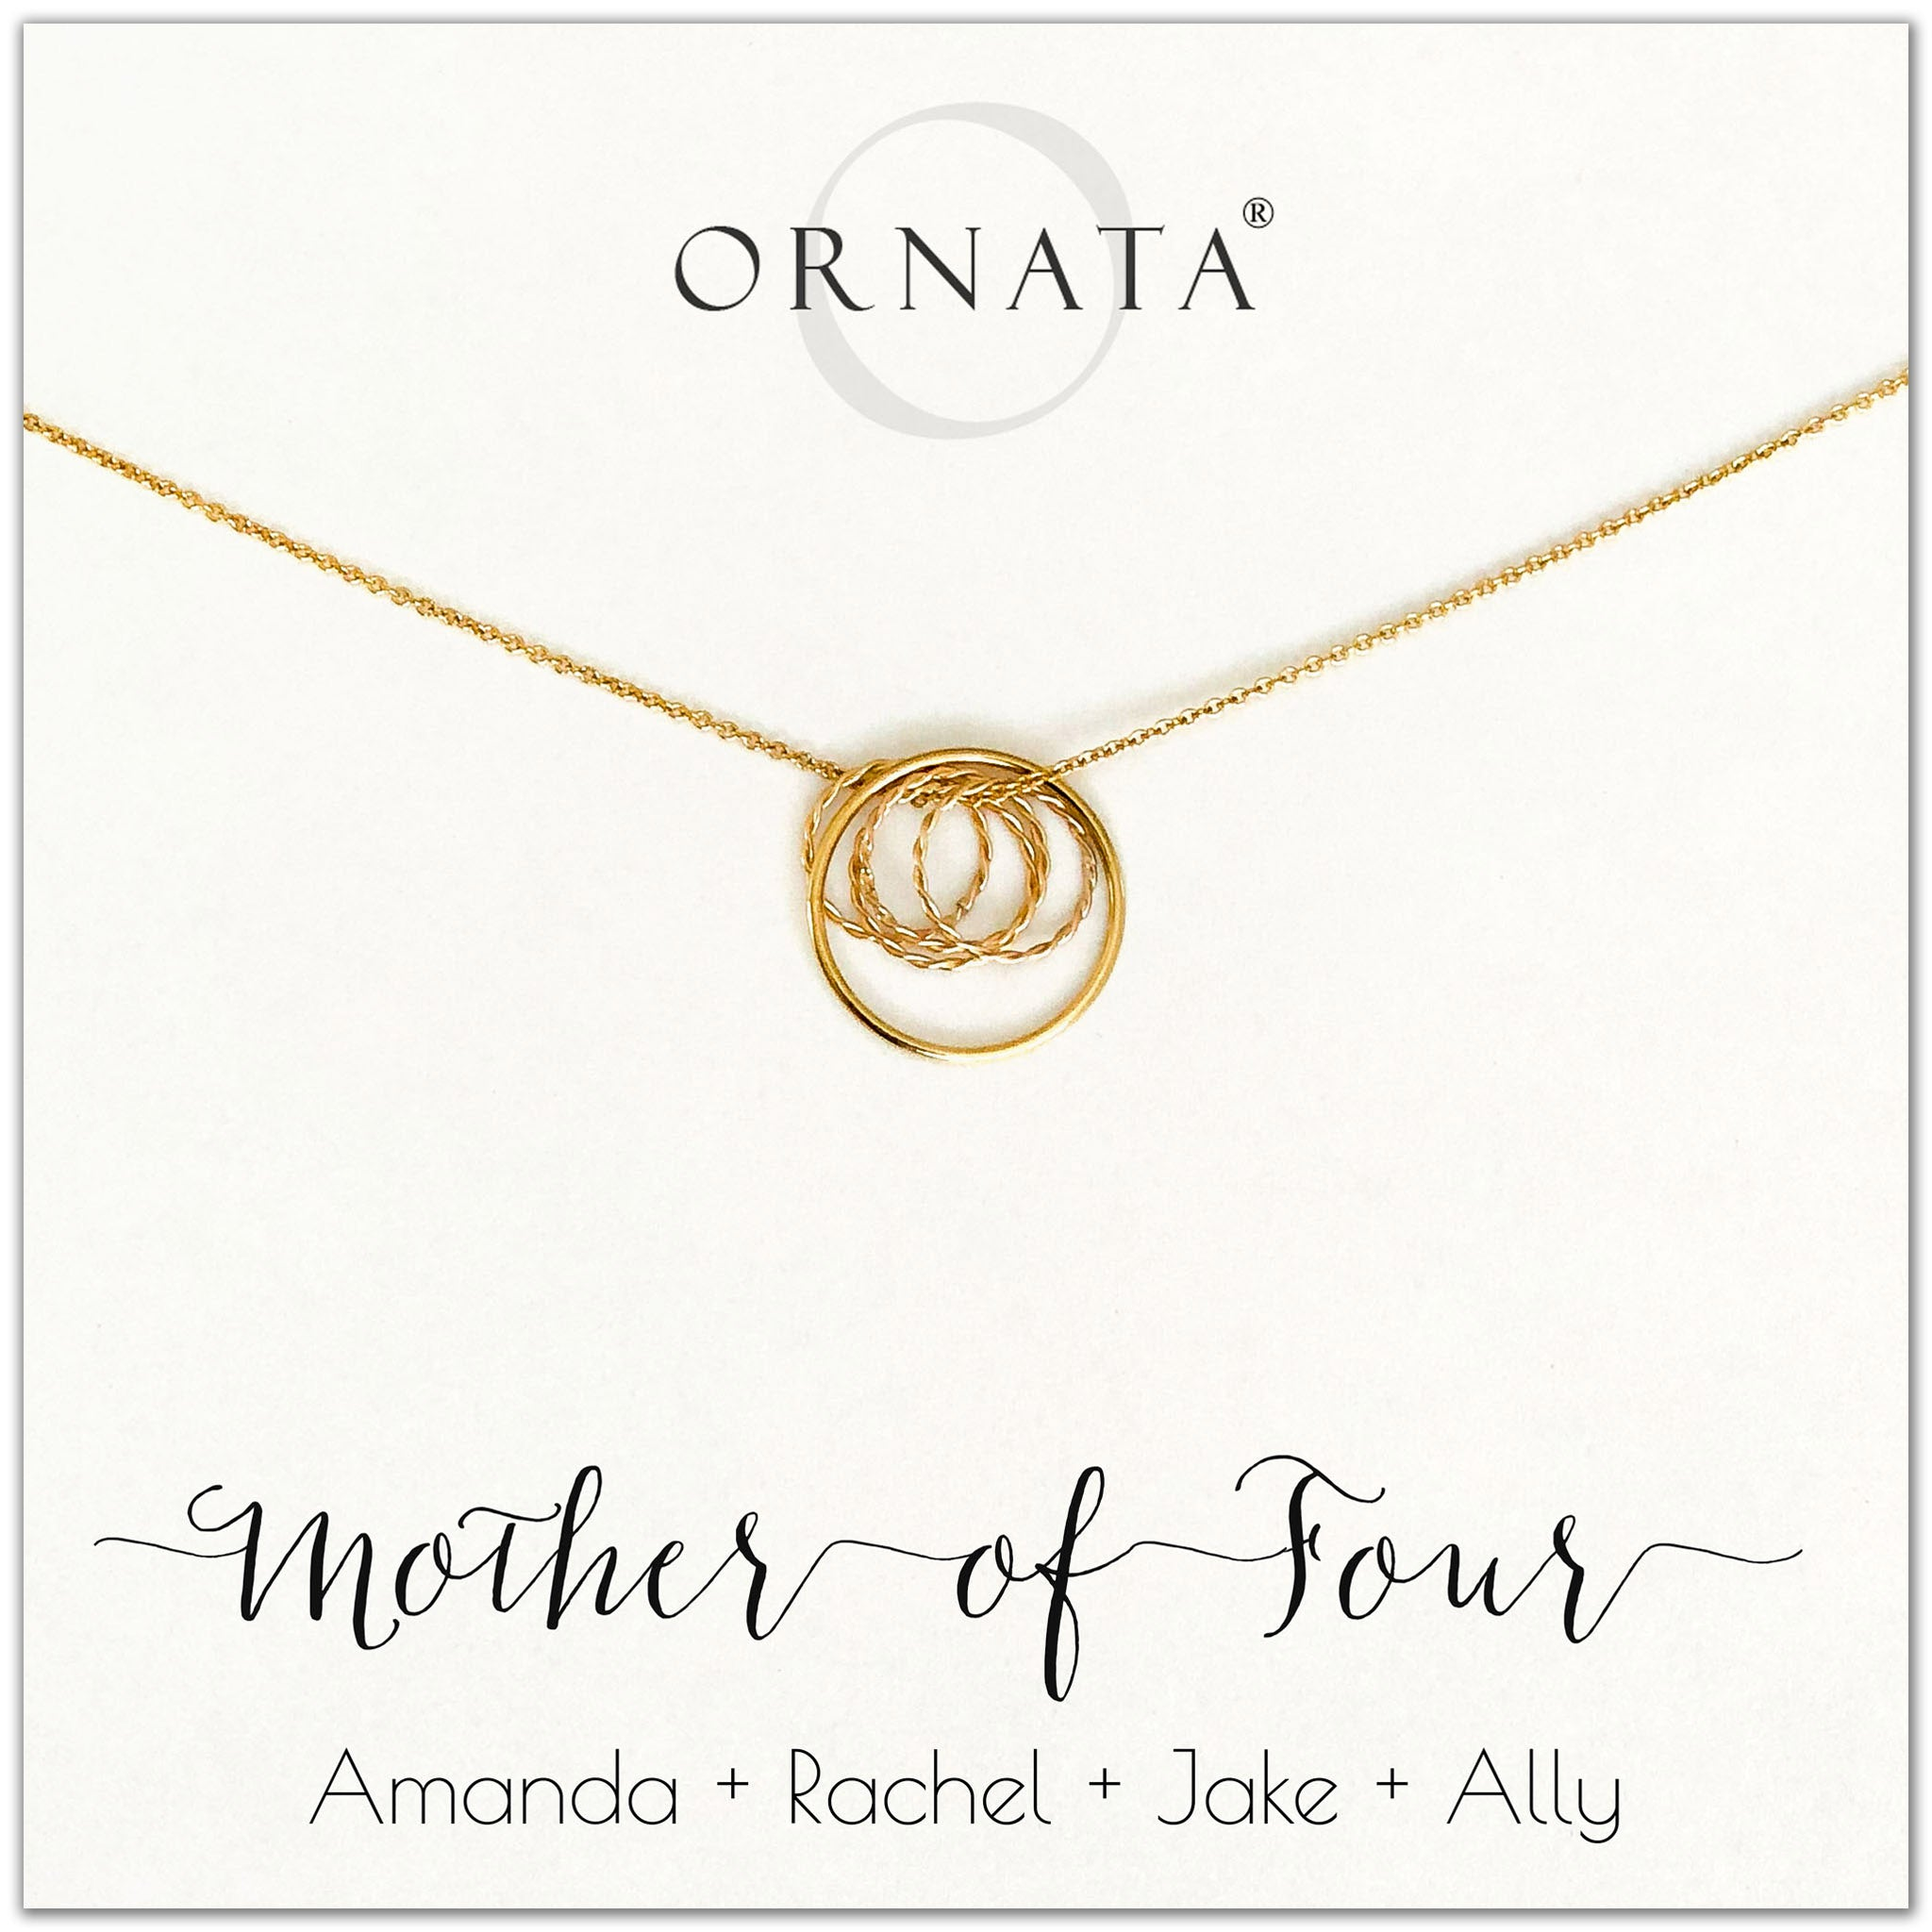 Mom or Mother of Four - personalized gold necklaces. Our 14 karat gold filled custom jewelry is a perfect gift for mothers of four children, daughters, granddaughters, grandmothers, sisters, best friends, wives, girlfriends, and family members. Also a good gift for Mother's Day.